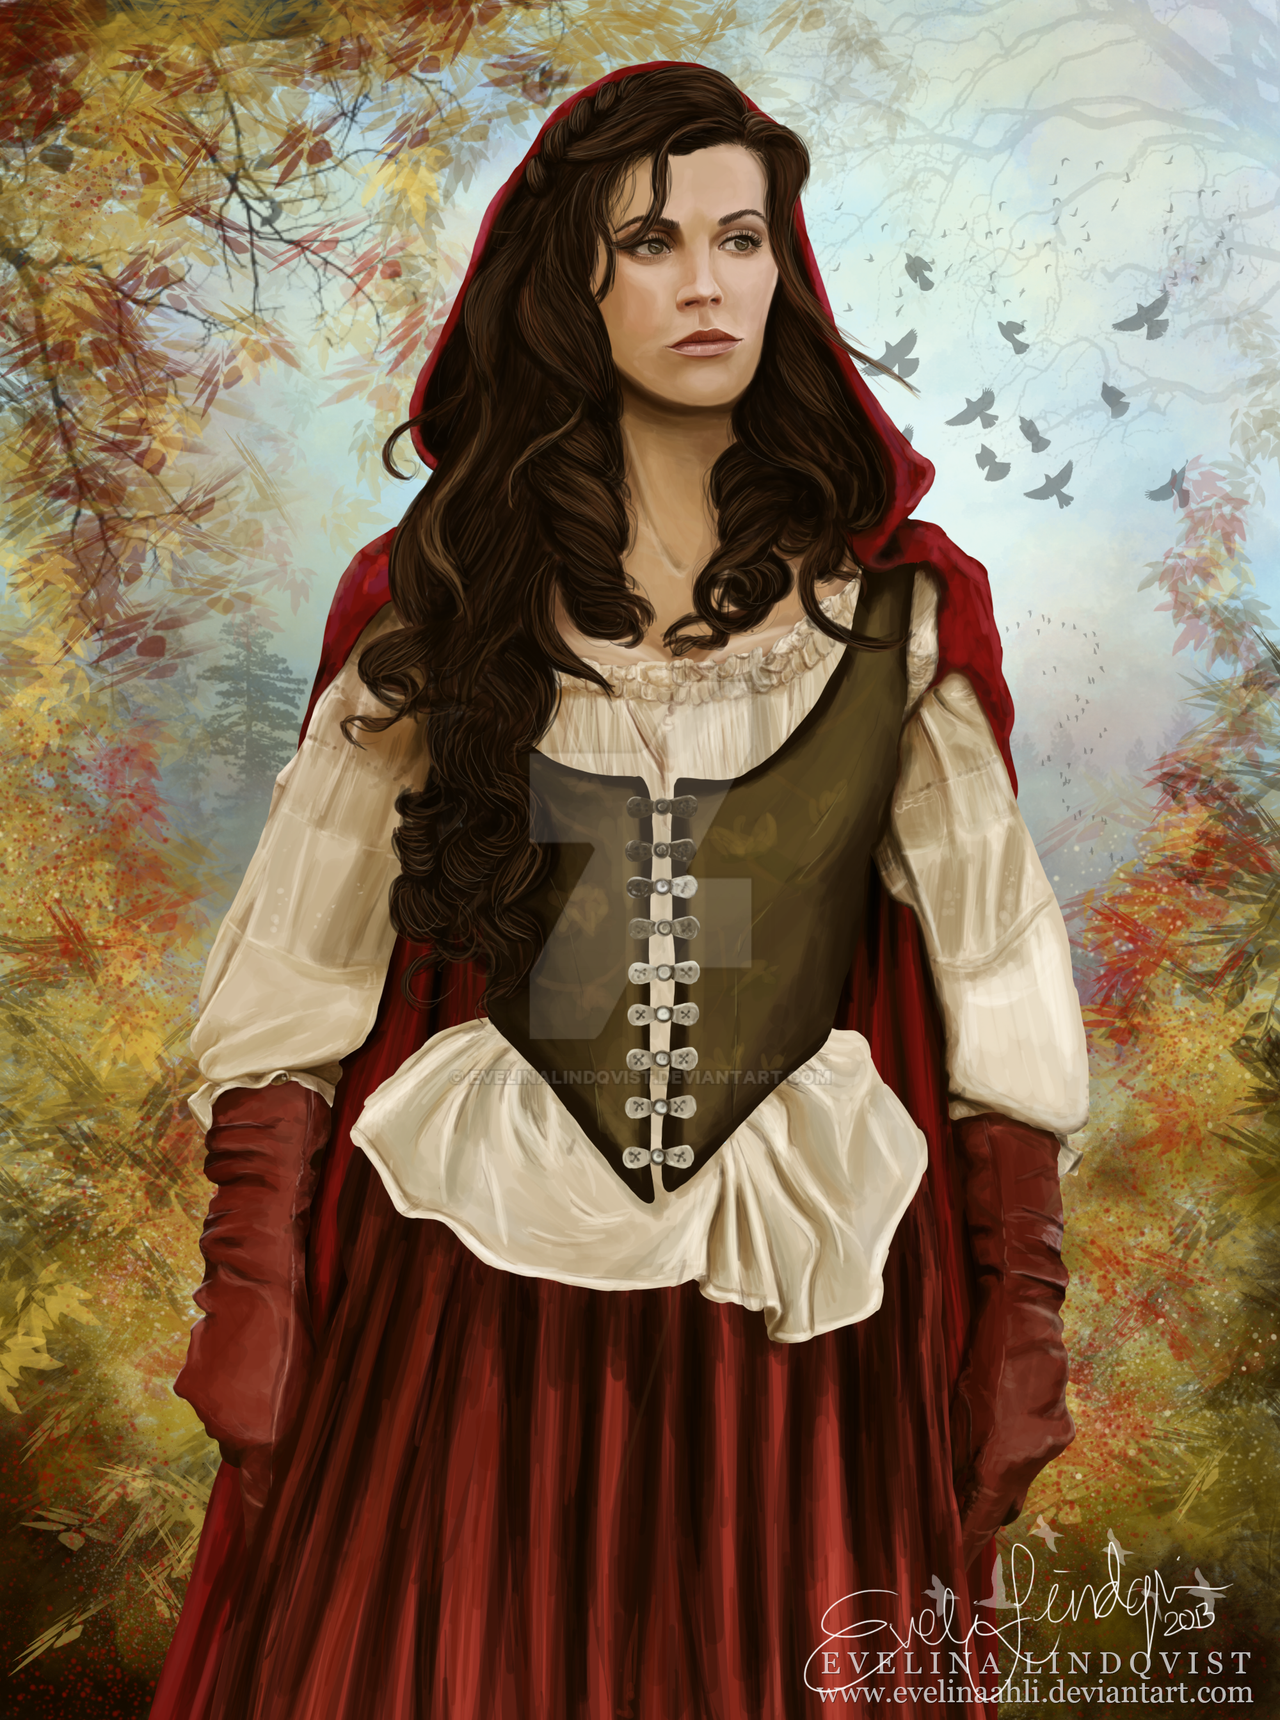 Red Riding Hood - Once Upon A Time by EvelinaLindqvist on